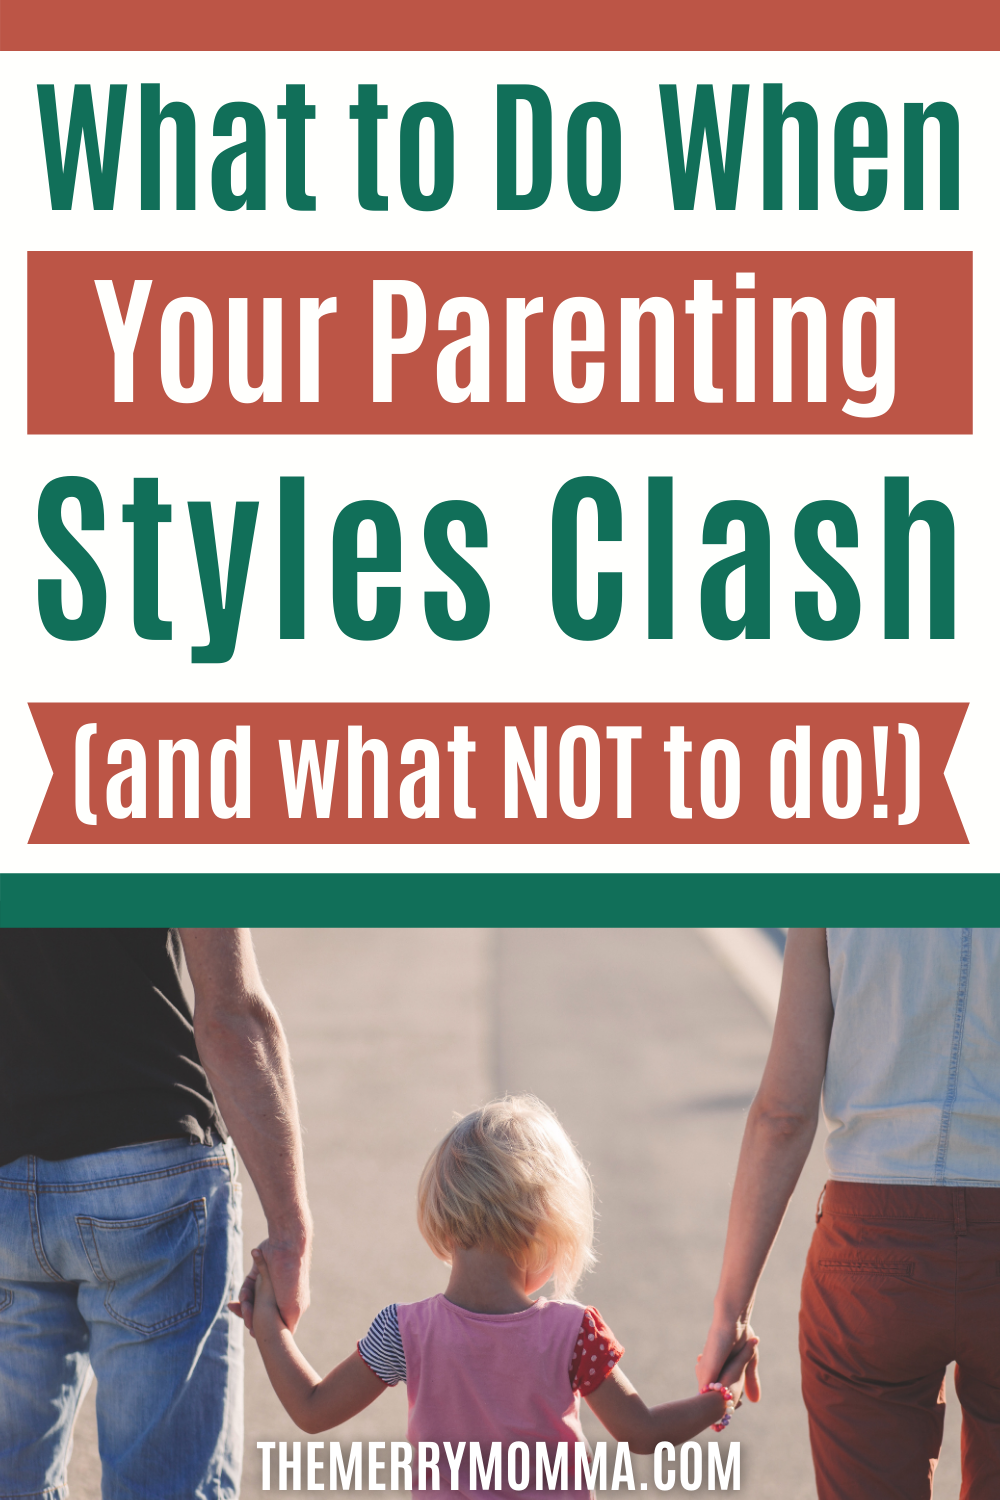 What to Do When Your Parenting Styles Clash | The Merry Momma